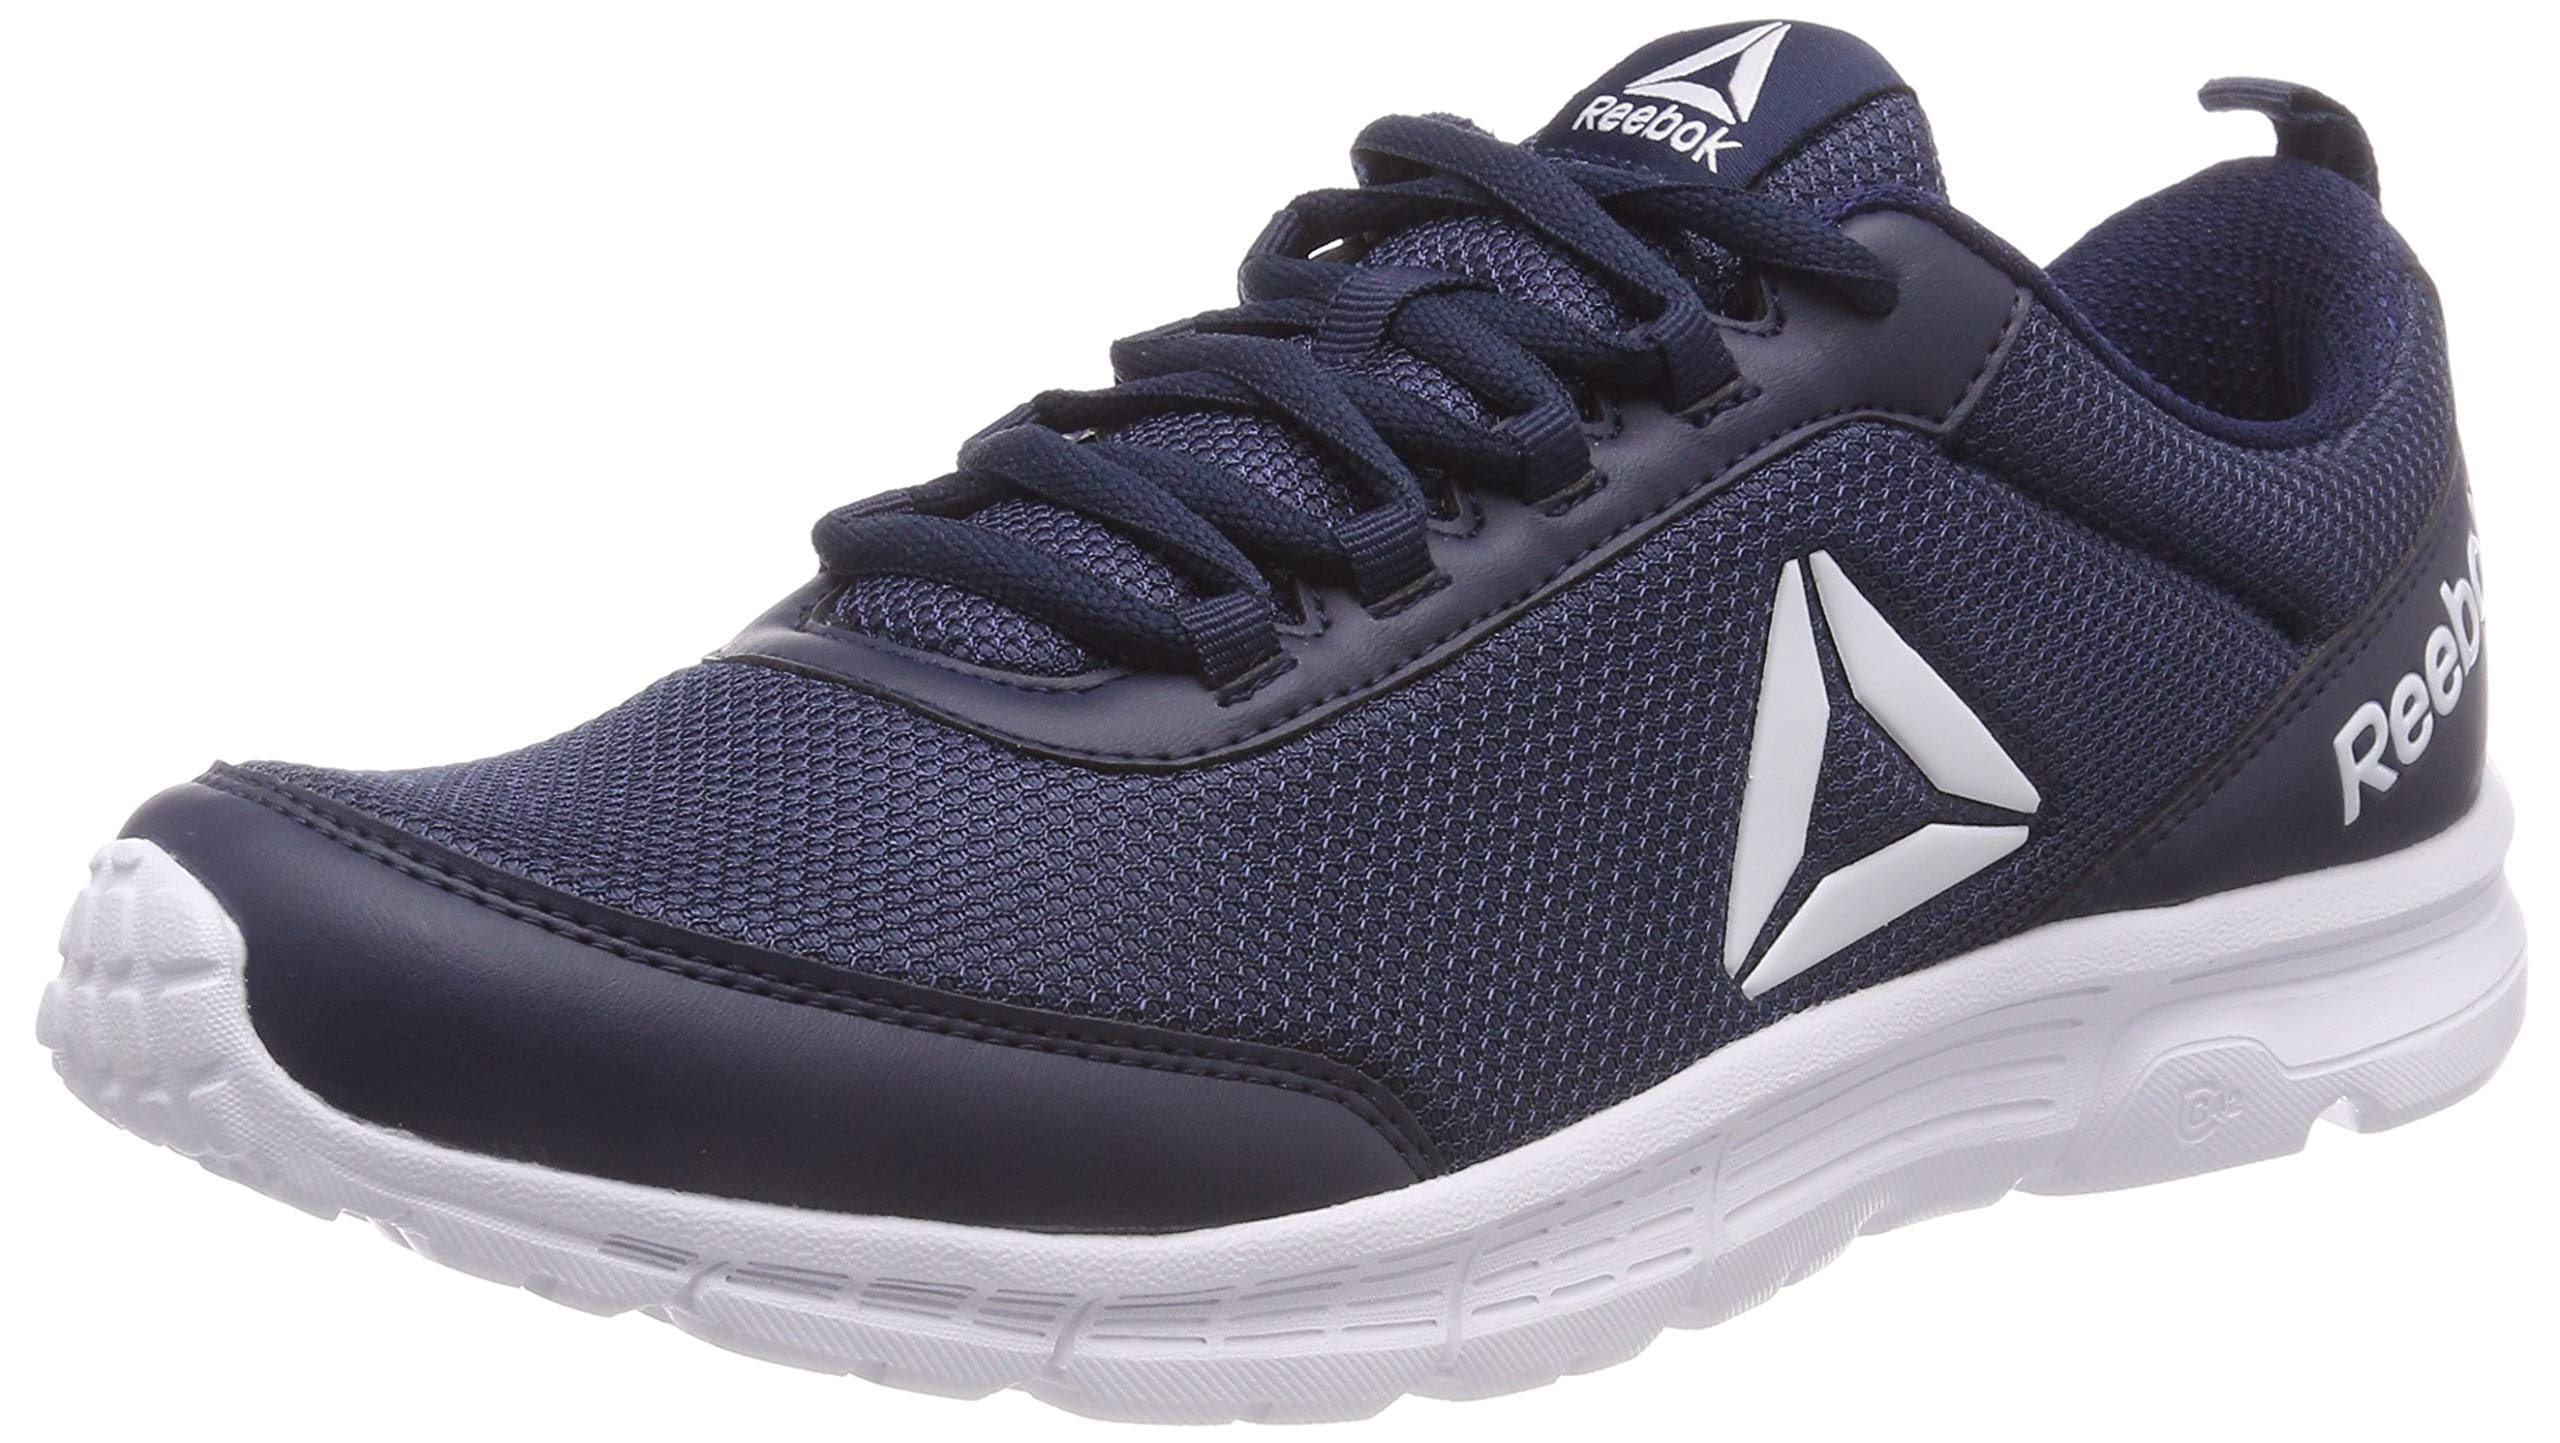 reebok shoes offer in uae